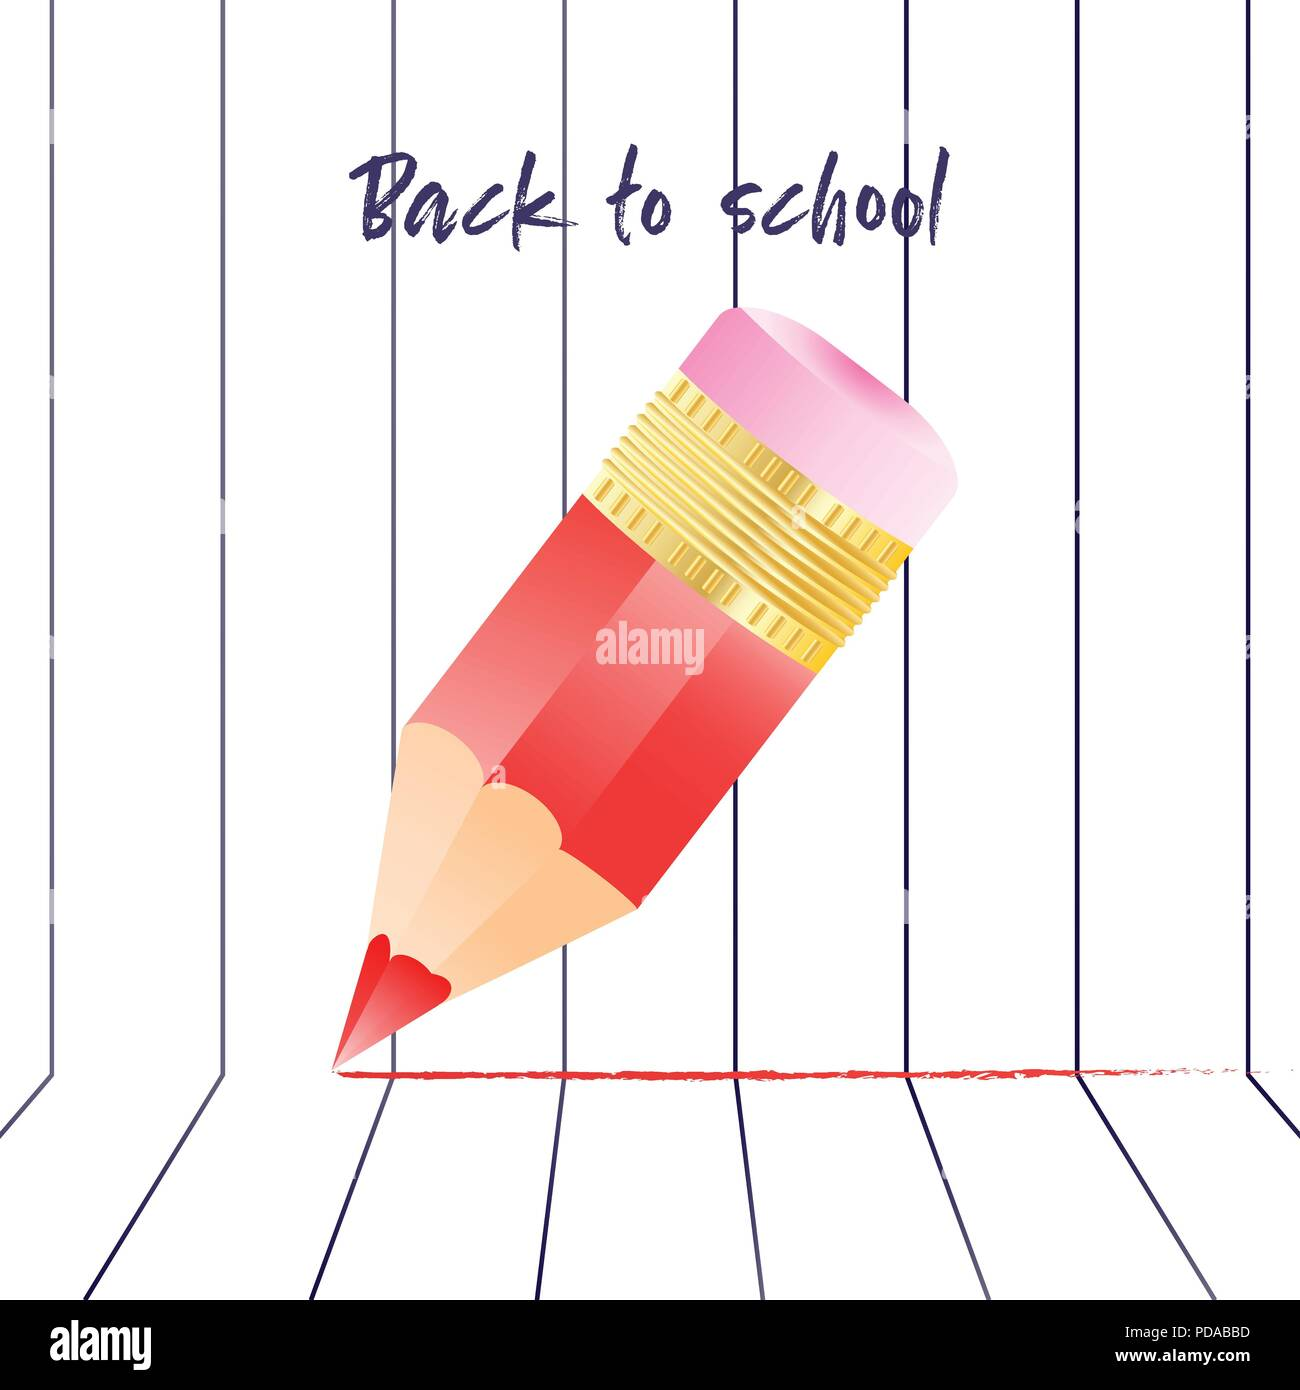 Abstract back to school background with red pencil and lined notebook. Back to school backdrop quote - Stock Image